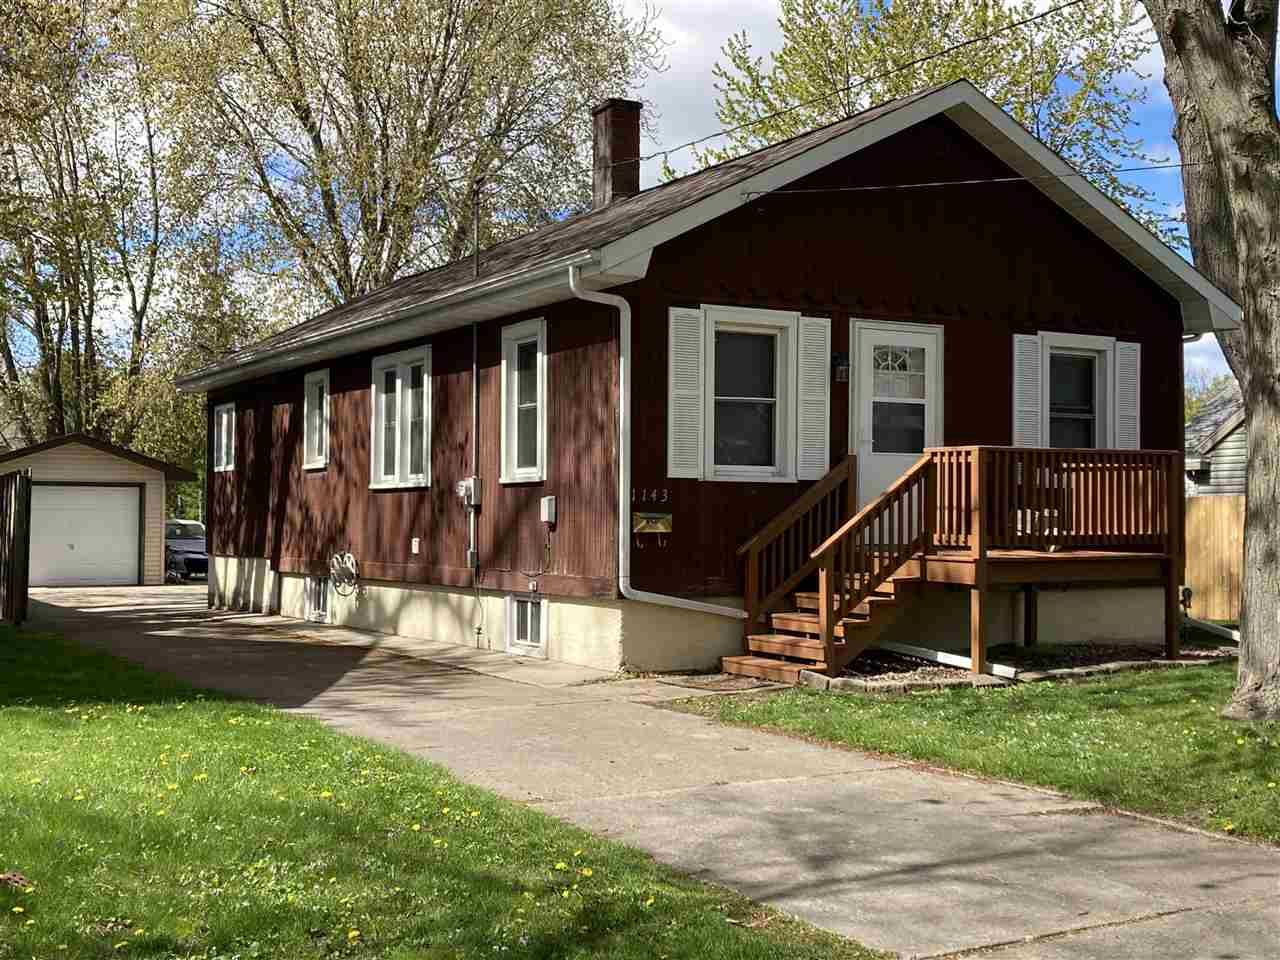 1143 REED Street, Green Bay, WI 54303 - MLS#: 50240215